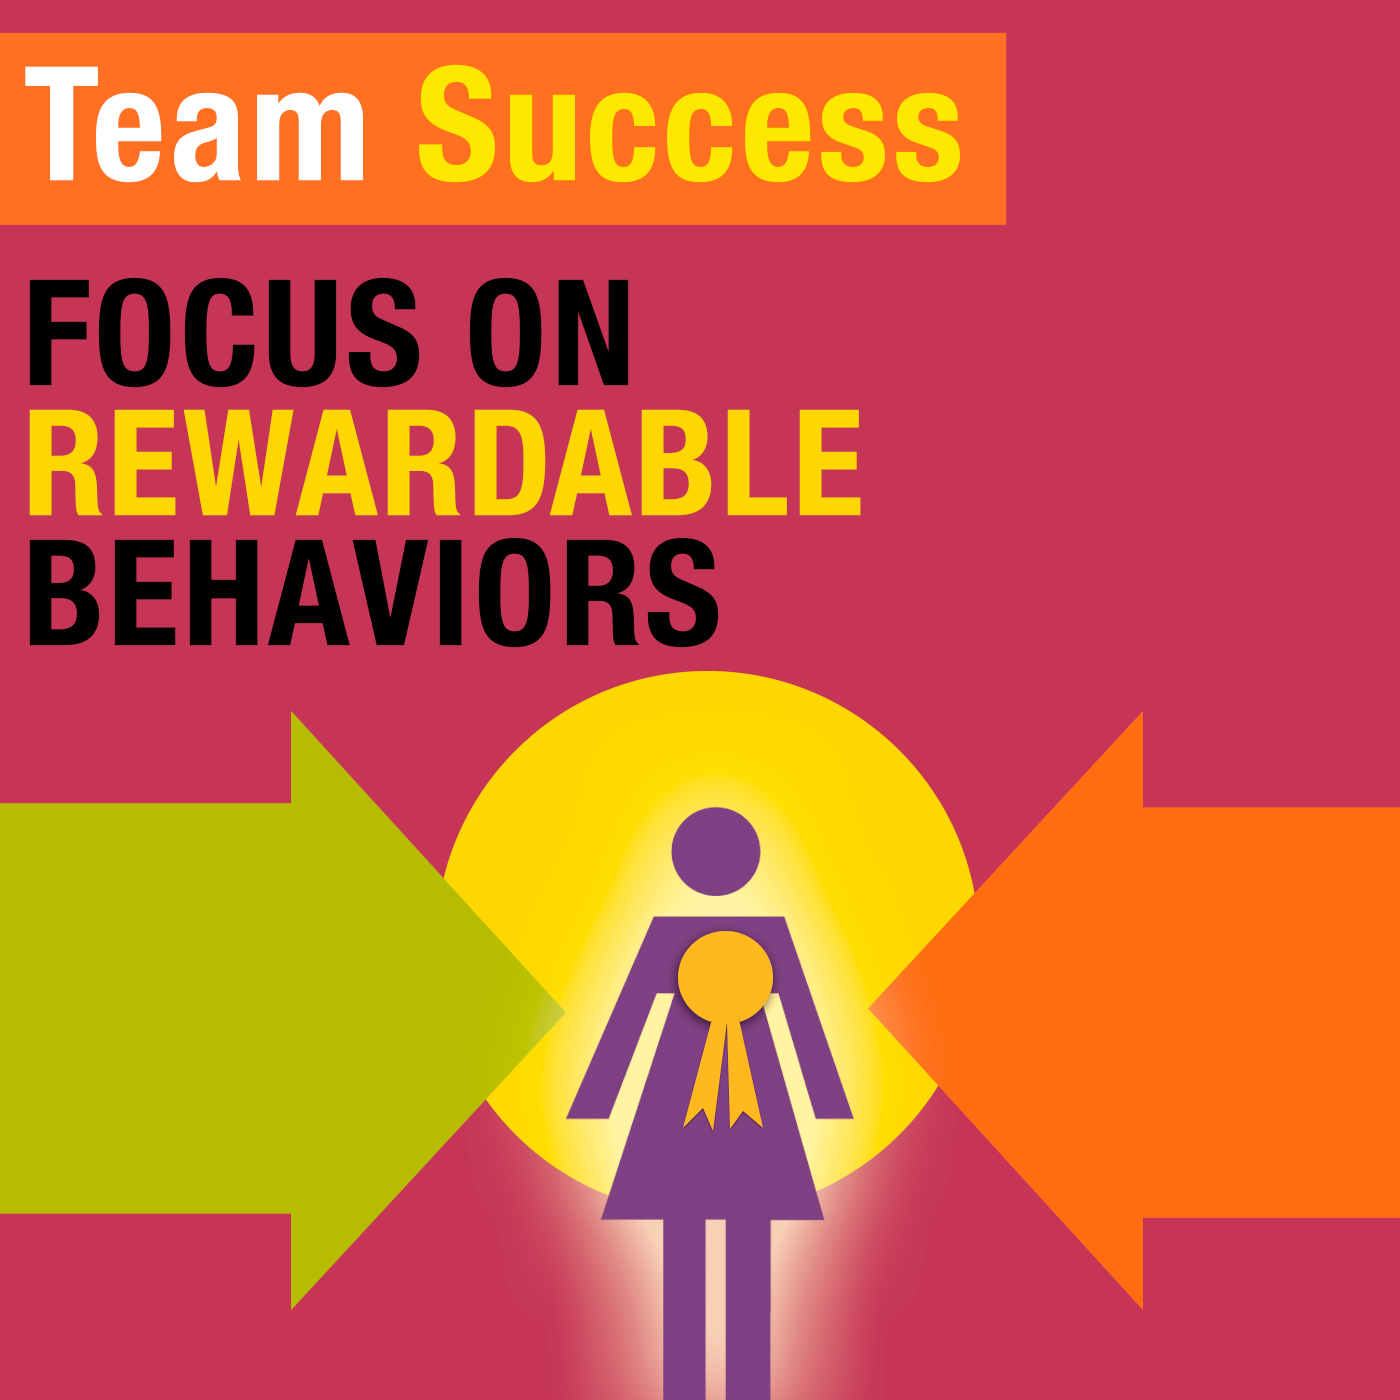 Focus On Rewardable Behaviors